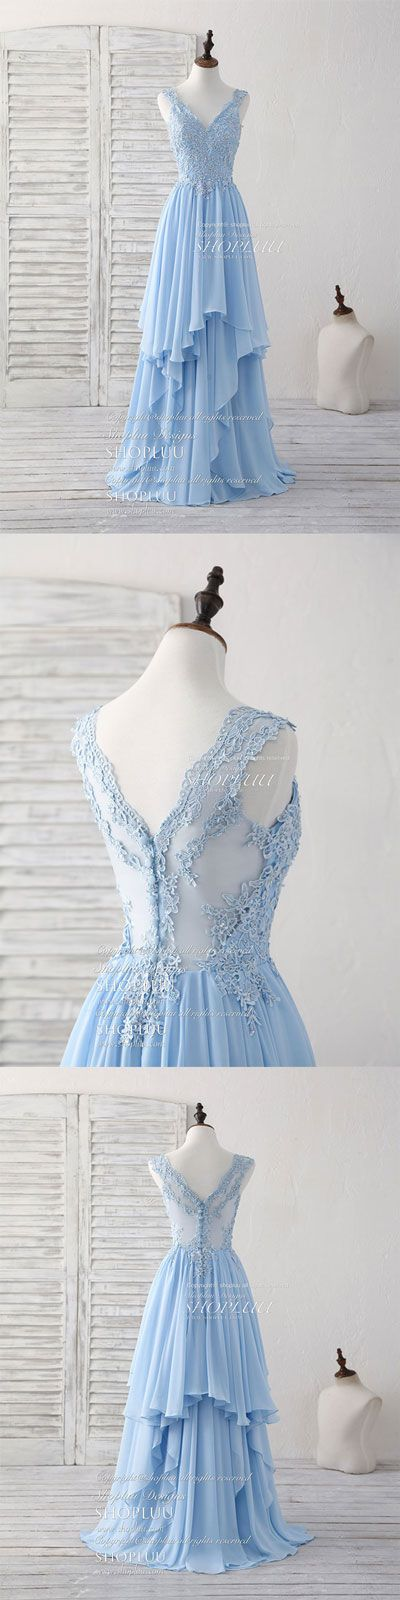 Blue v neck applique chiffon long prom dress lace bridesmaid dress